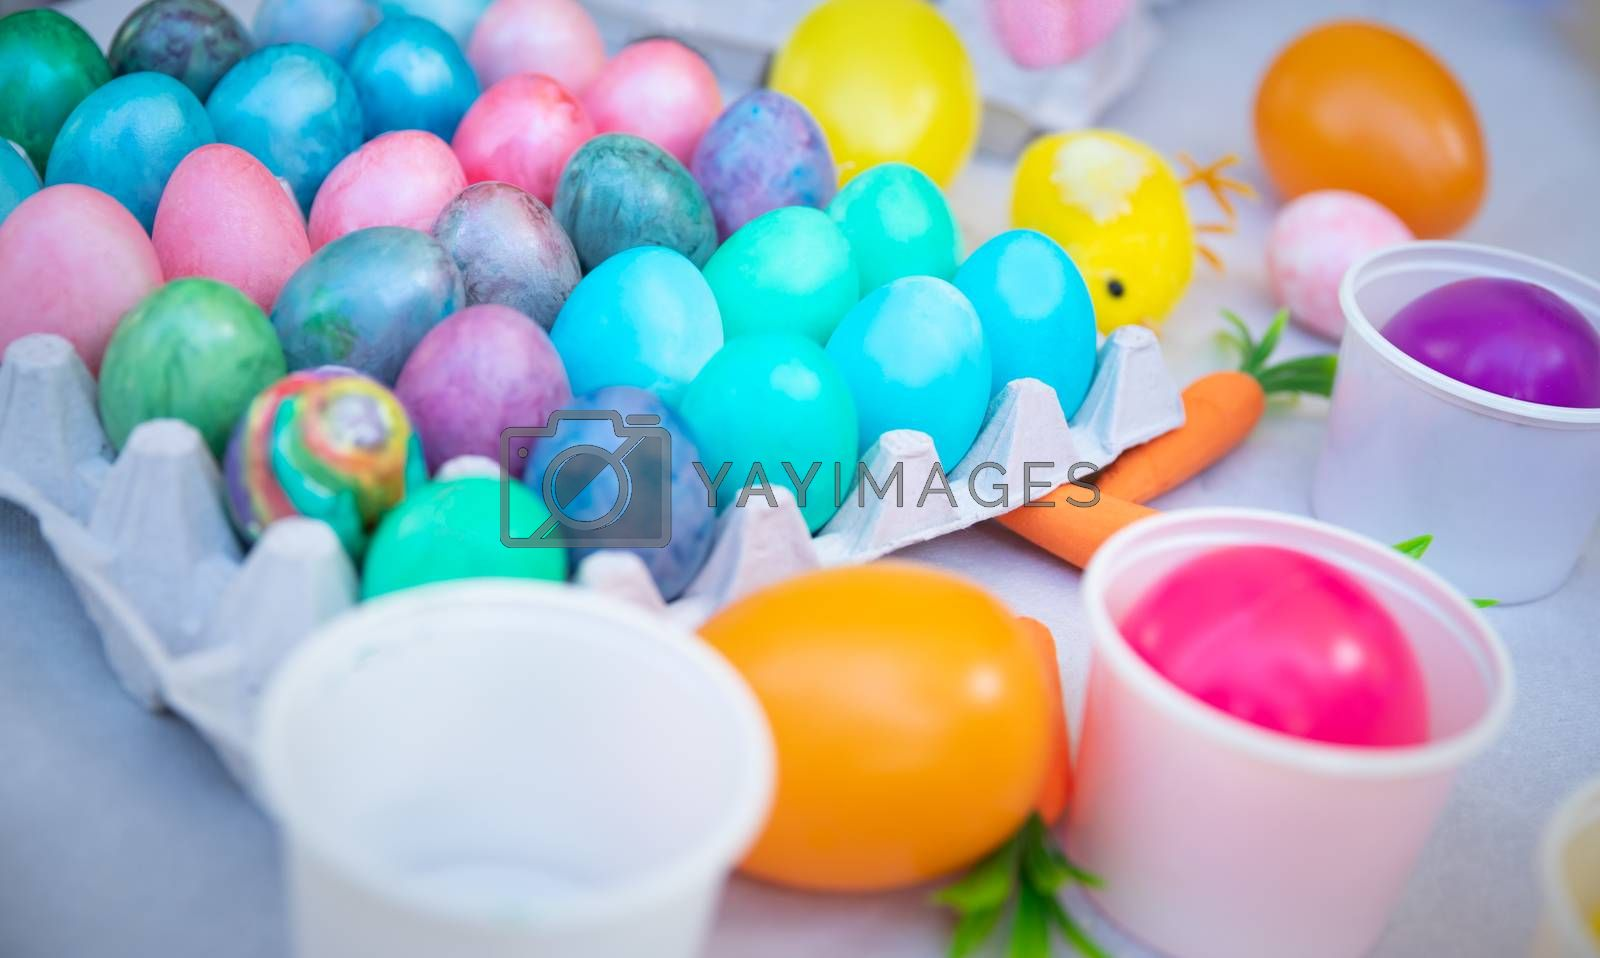 Closeup photo of a many different colorful Easter eggs, festive decoration, traditional painted Easter food, child's art, happy religious holiday